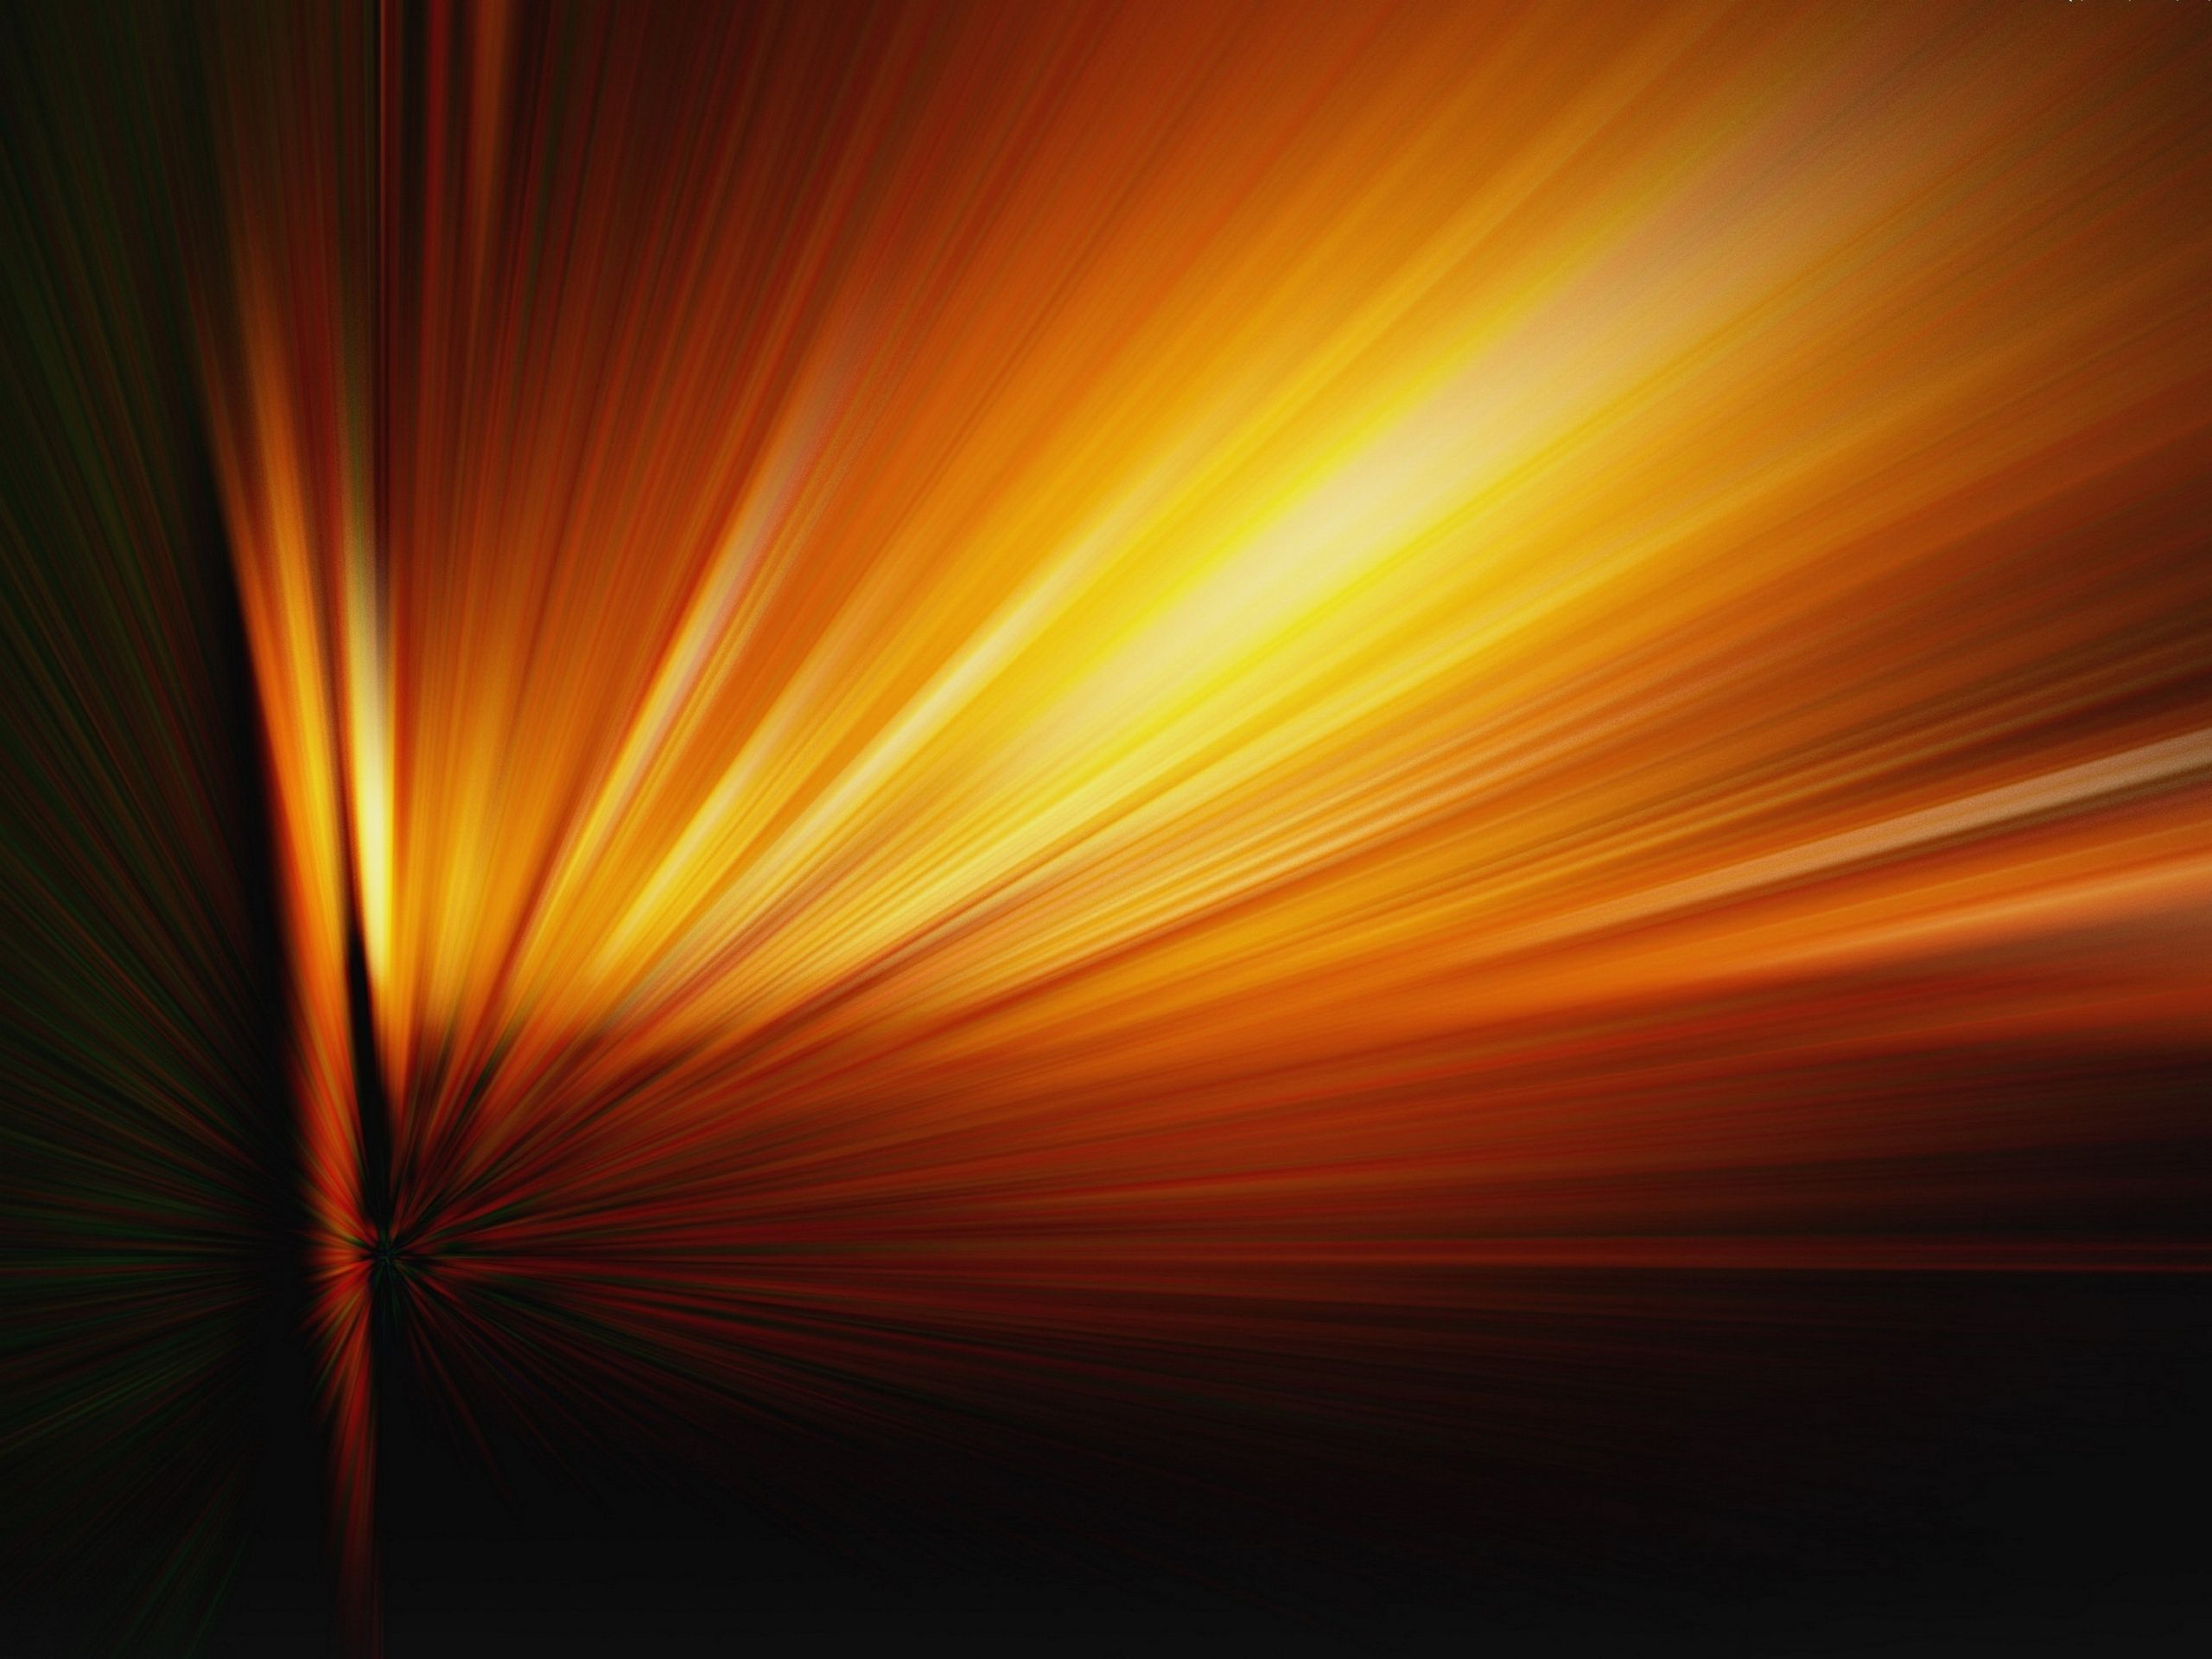 Iphone 5s Wallpapers Hd: Category 3d And Abstract Album Abstract Tags